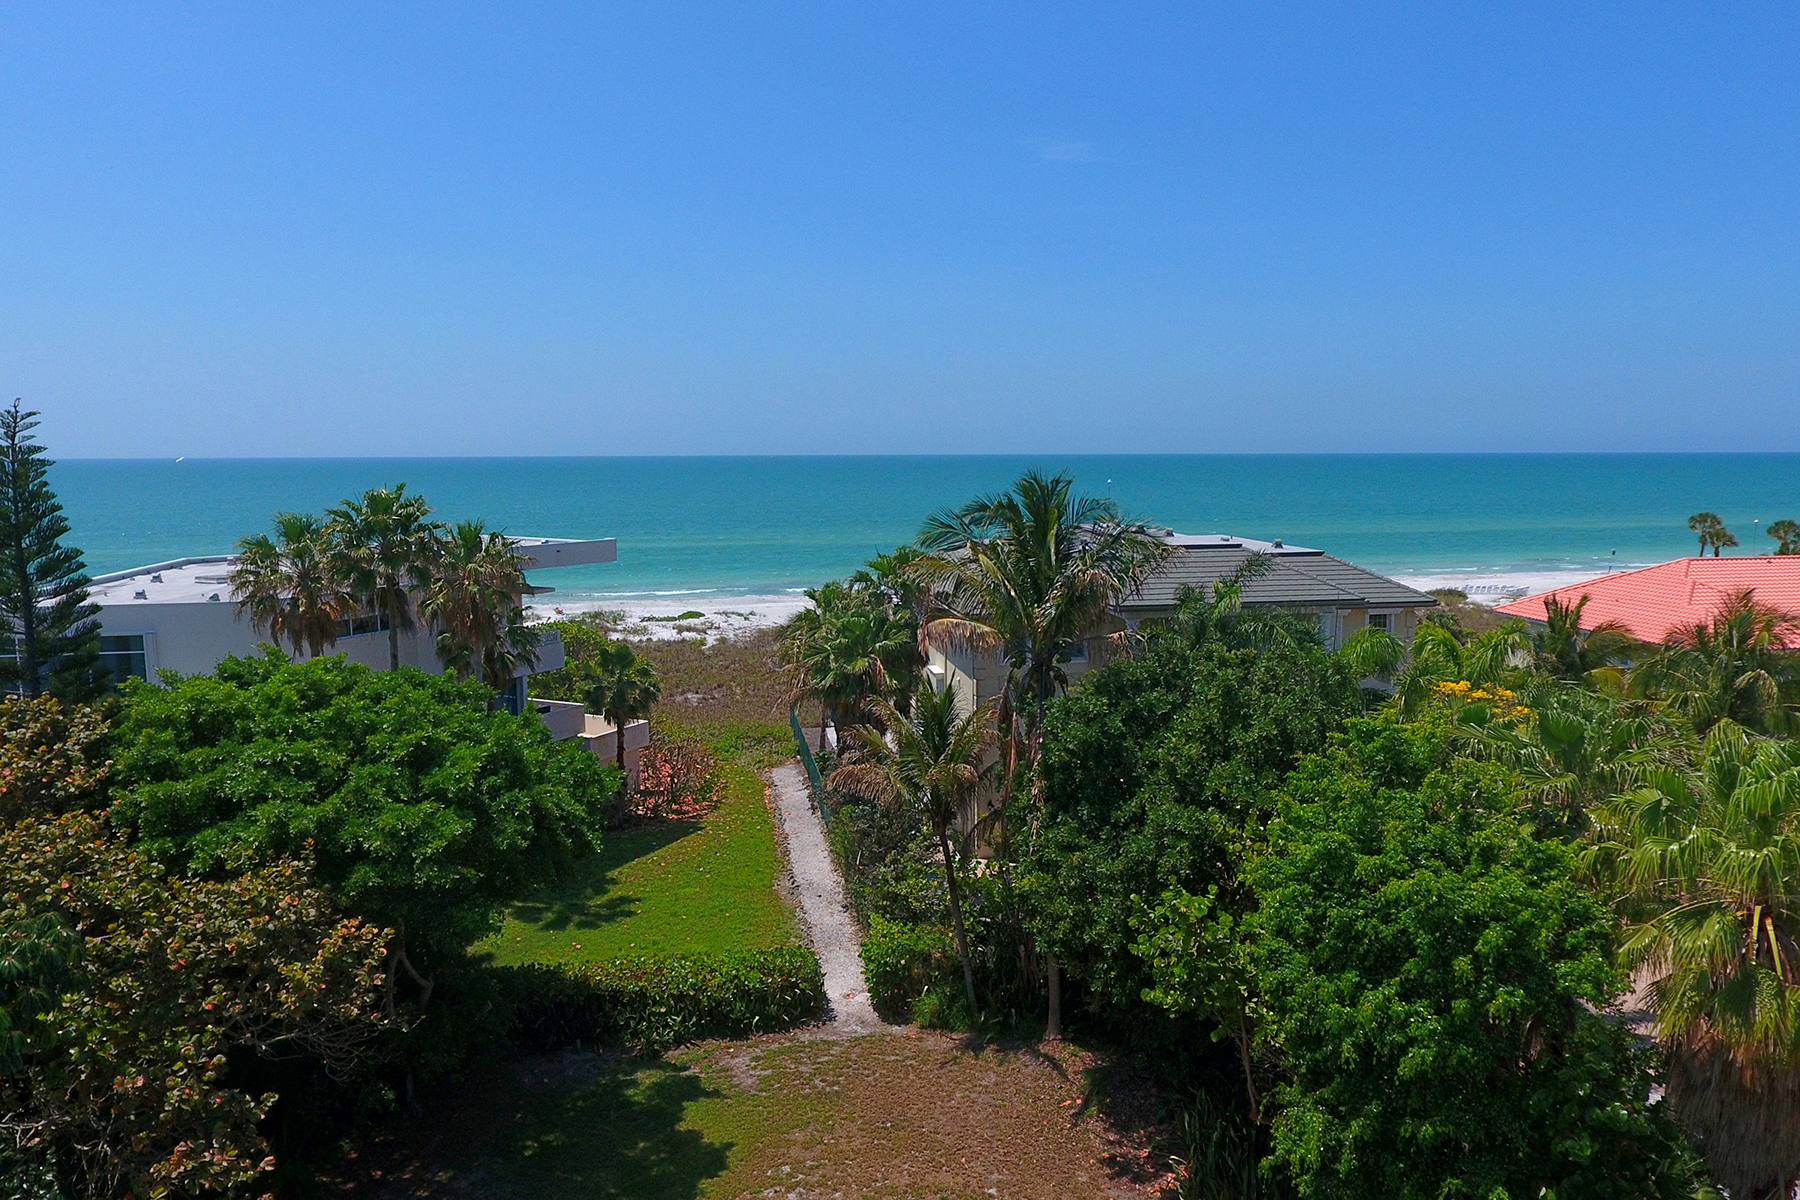 Land for Sale at LONGBOAT KEY 5809 Gulf Of Mexico Dr 2 Longboat Key, Florida, 34228 United States